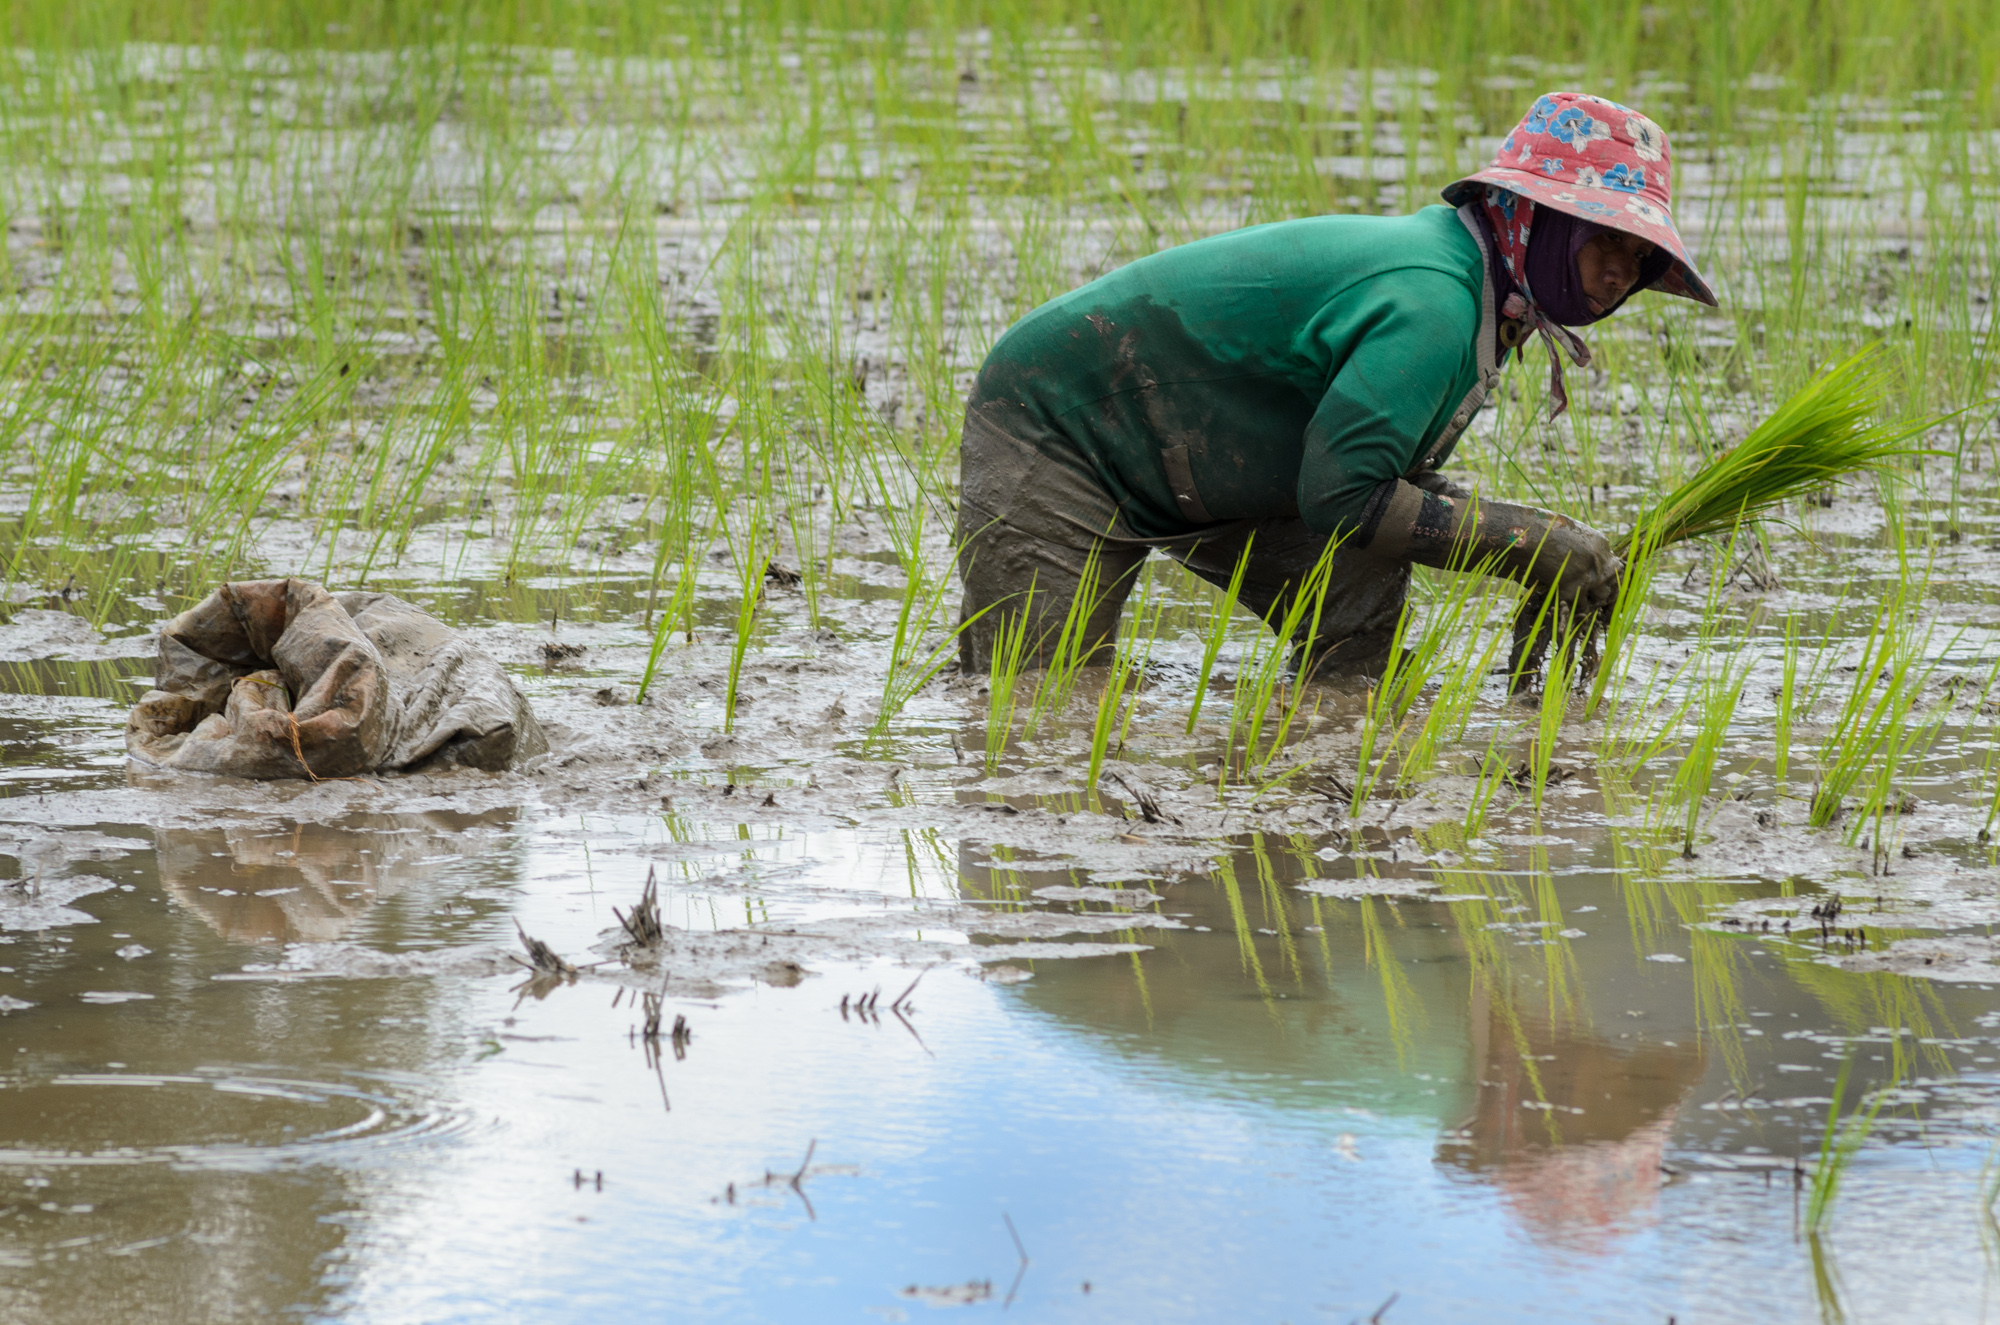 A woman replants paddy rice by hand in Bario, in the Kelabit Highlands of Malaysia. A logging road has brought many changes to the Kelabit people of the interior highlands of Sarawak in Malaysia. One of the biggest shifts is mechanized rice growing, which is changing how the grain has been grown for generations.  -Photo ©2013/Jerry Redfern